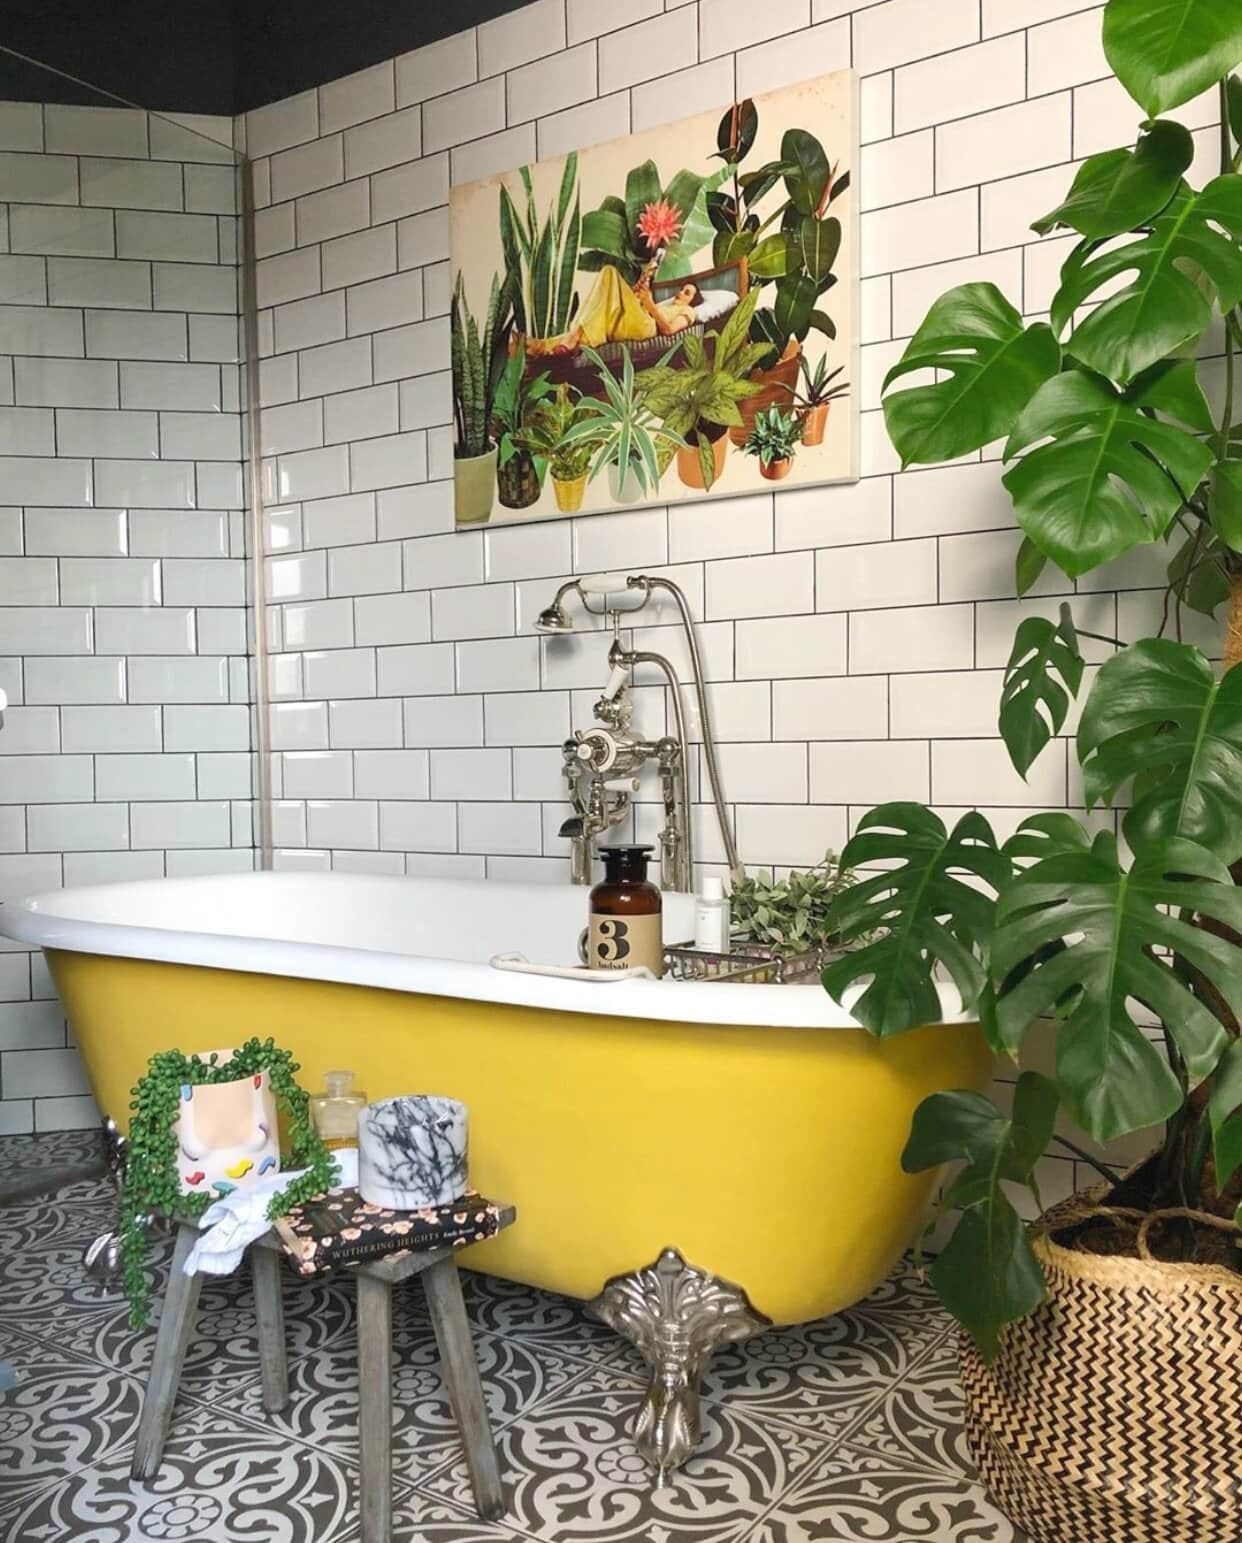 One of my favourite colourful baths on the gram! Instagram: @the_idle_hands